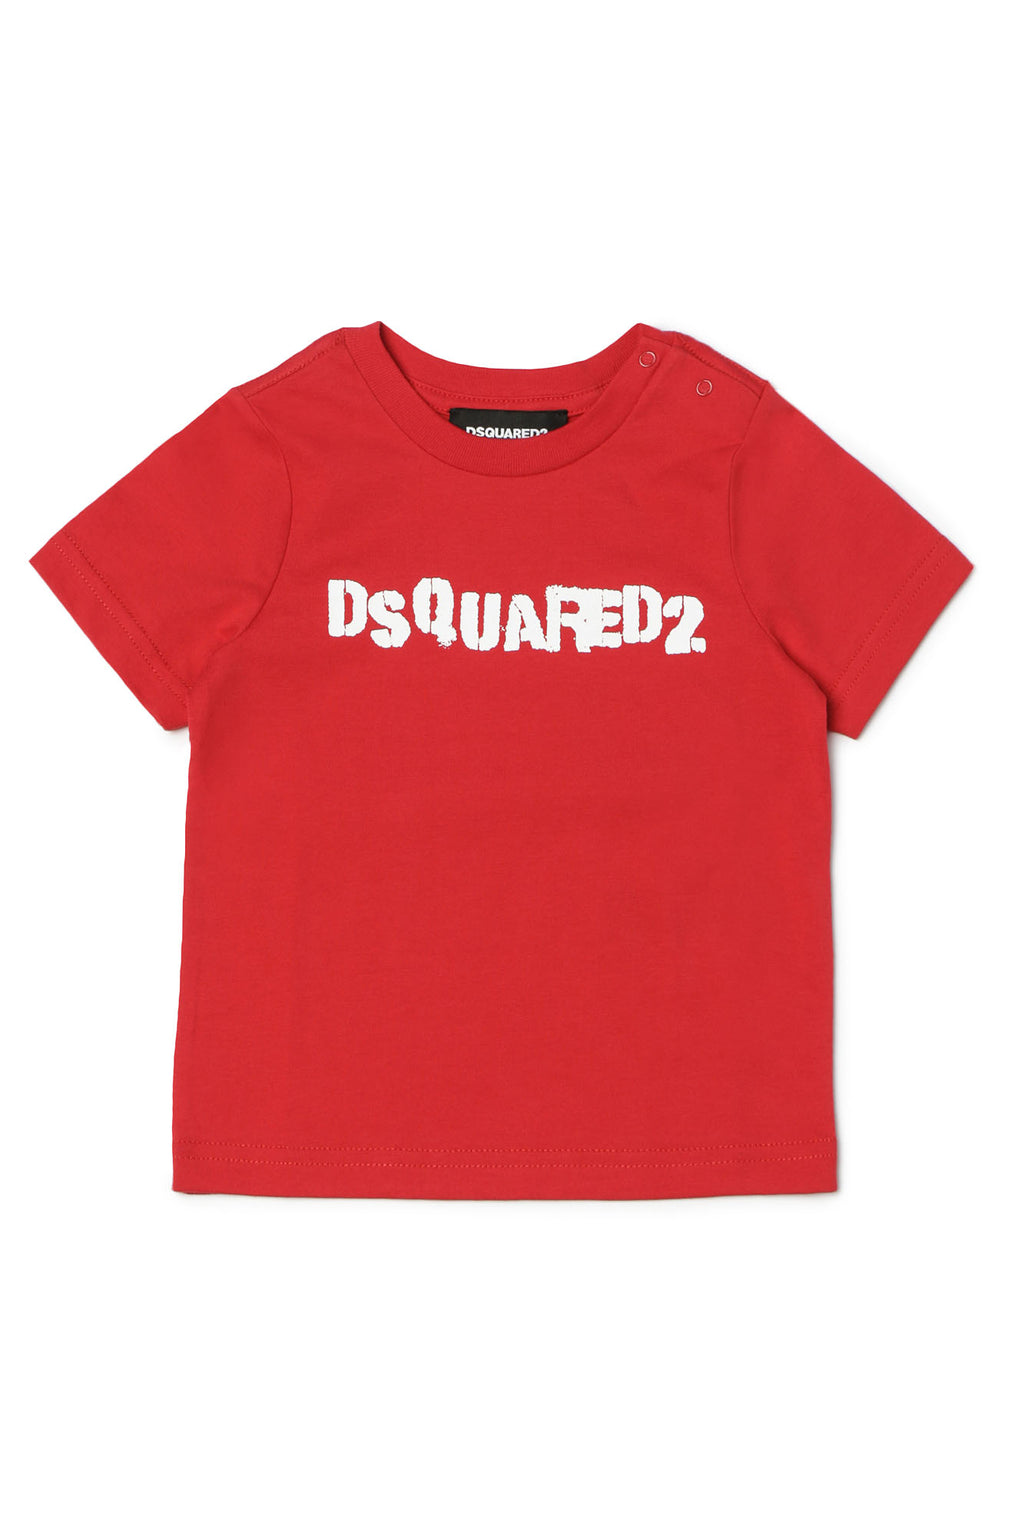 Dsquared2 Red Tee-DSQUARED2-Maralex Paris (4432207380543)